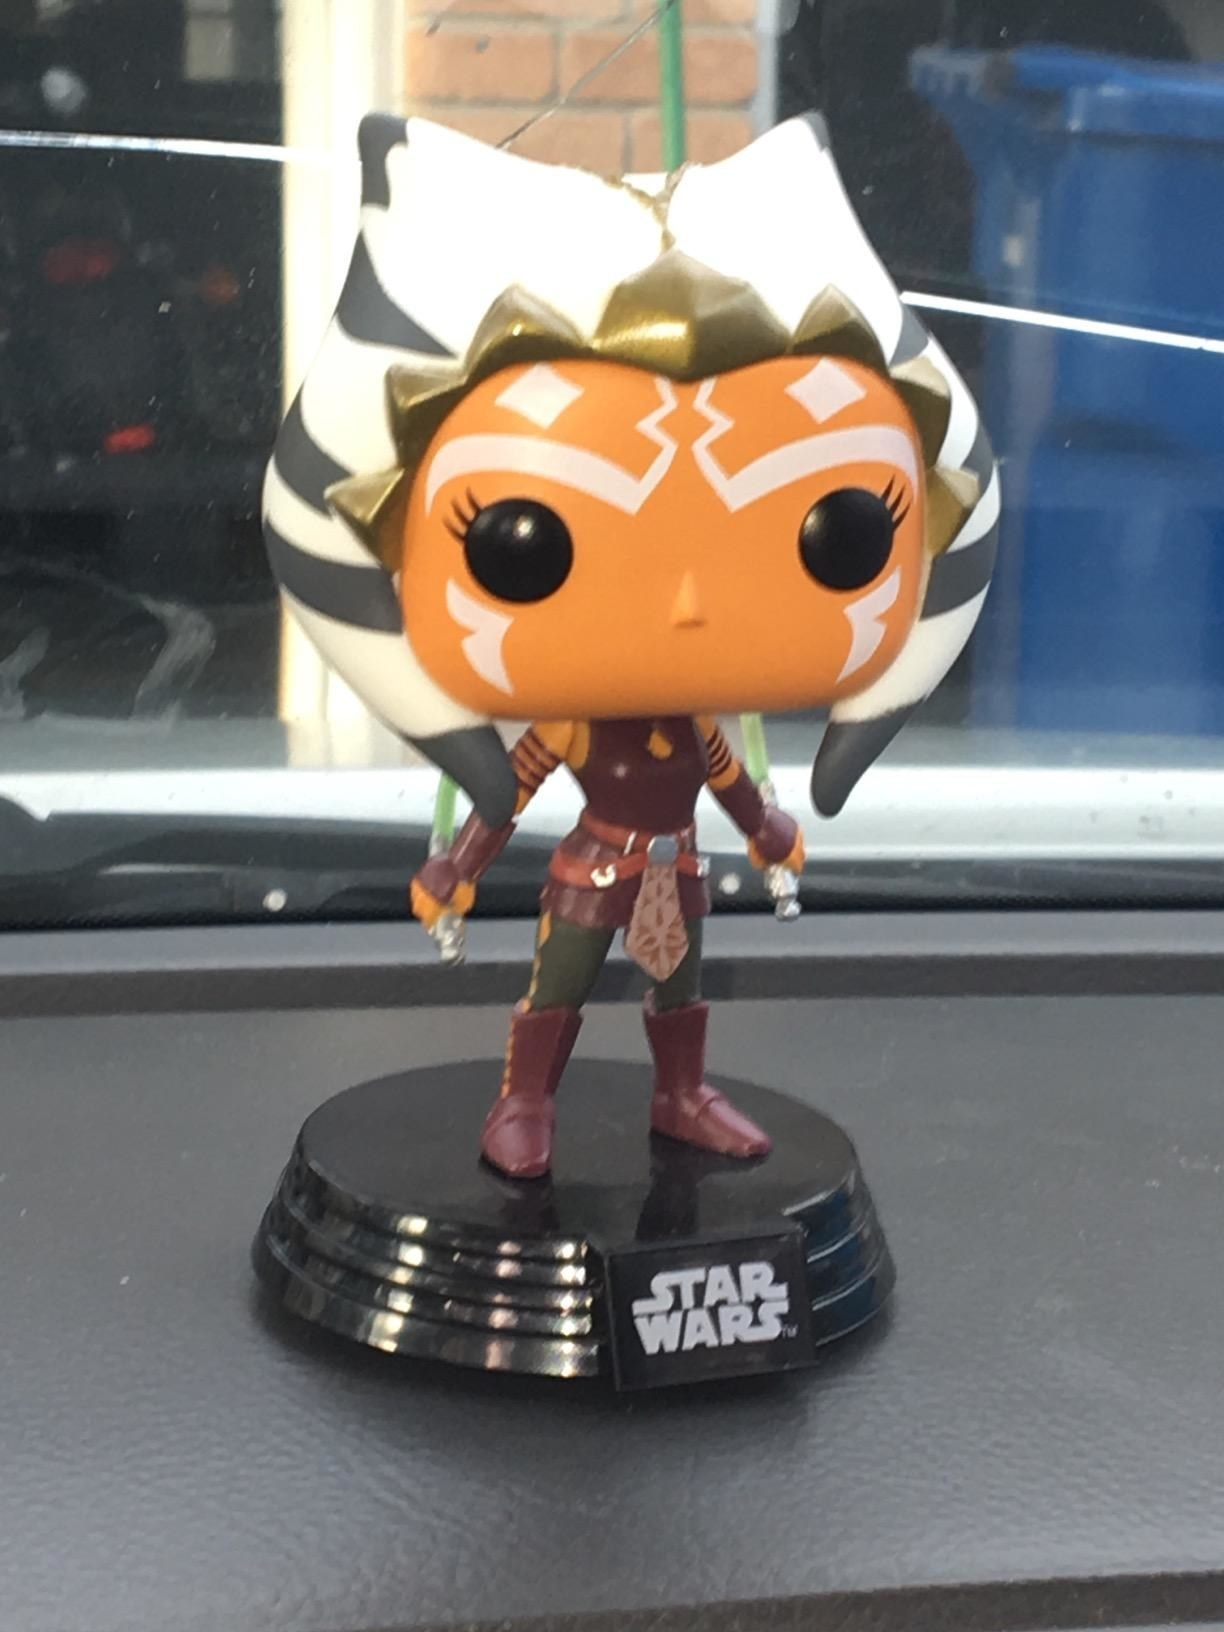 the funko pop figure of ahsoka